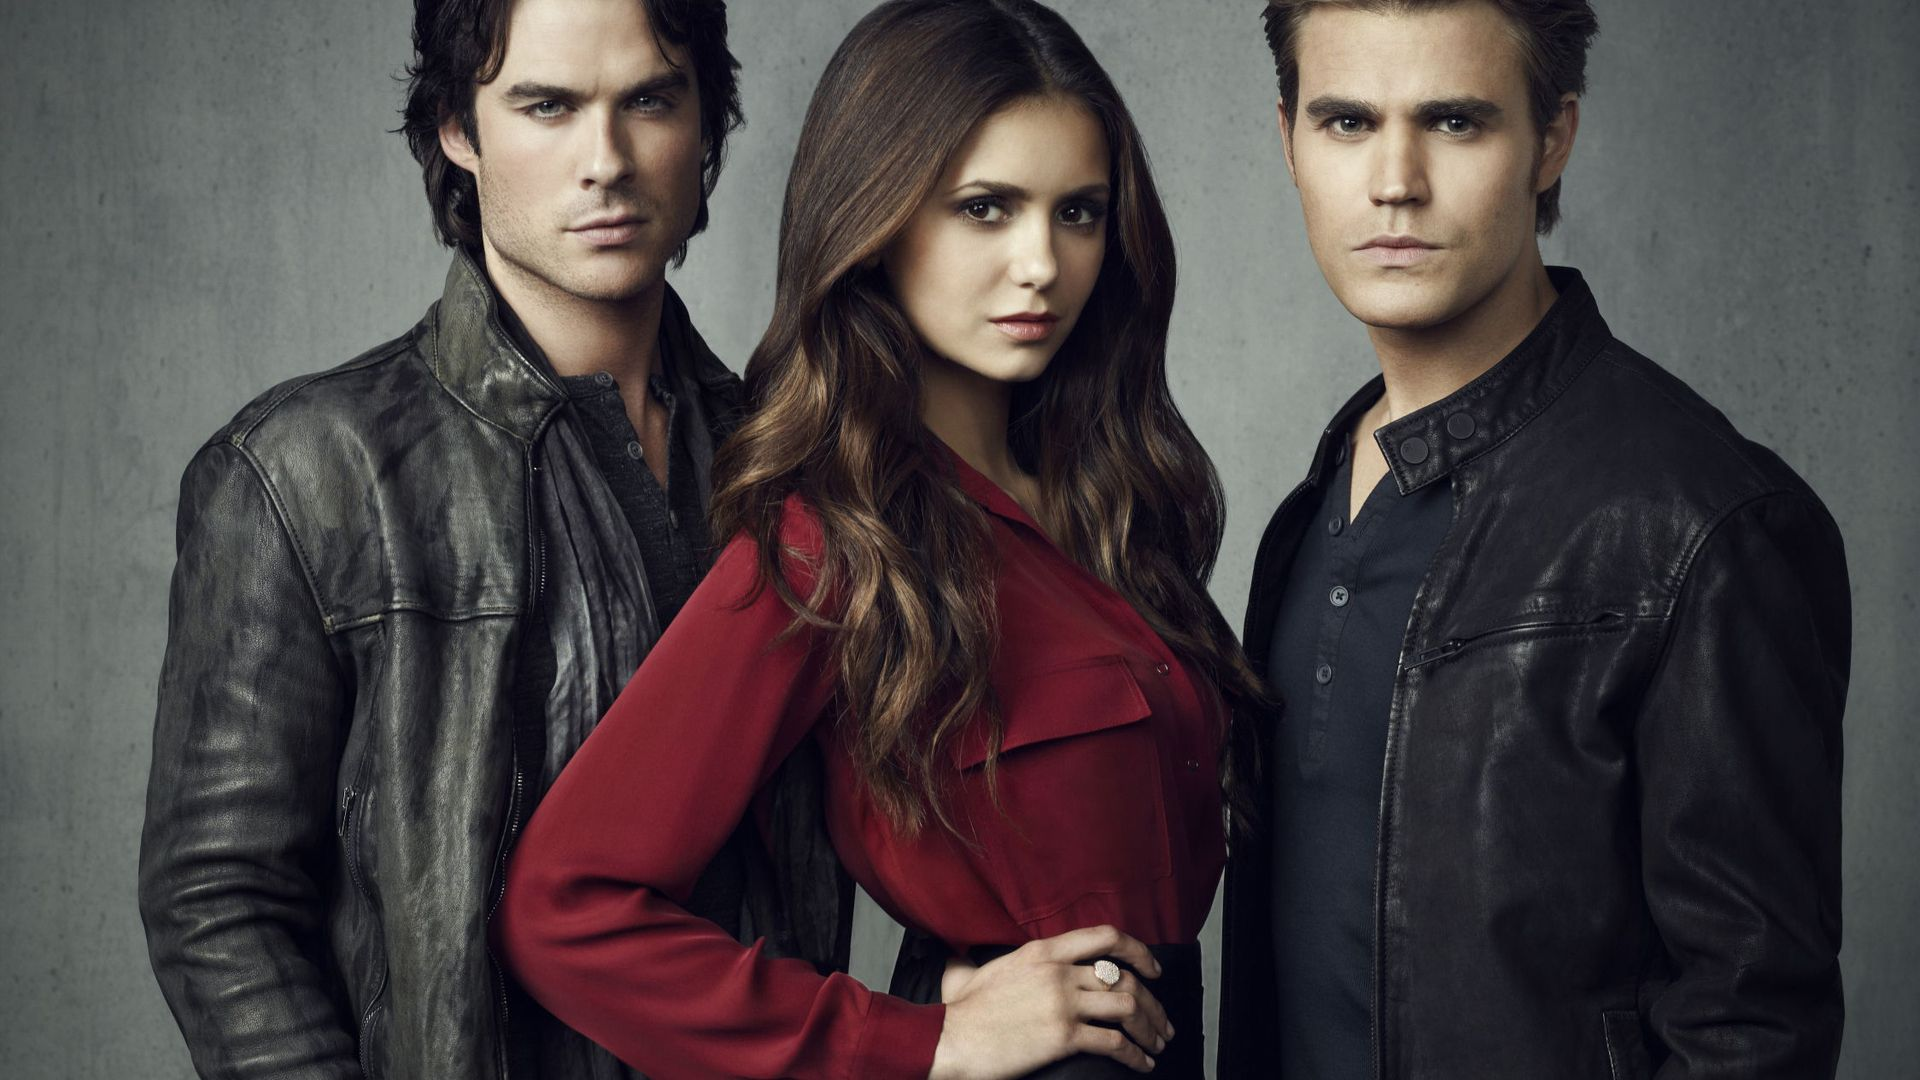 Vampire Diaries wallpaper | 1920x1080 | #44190